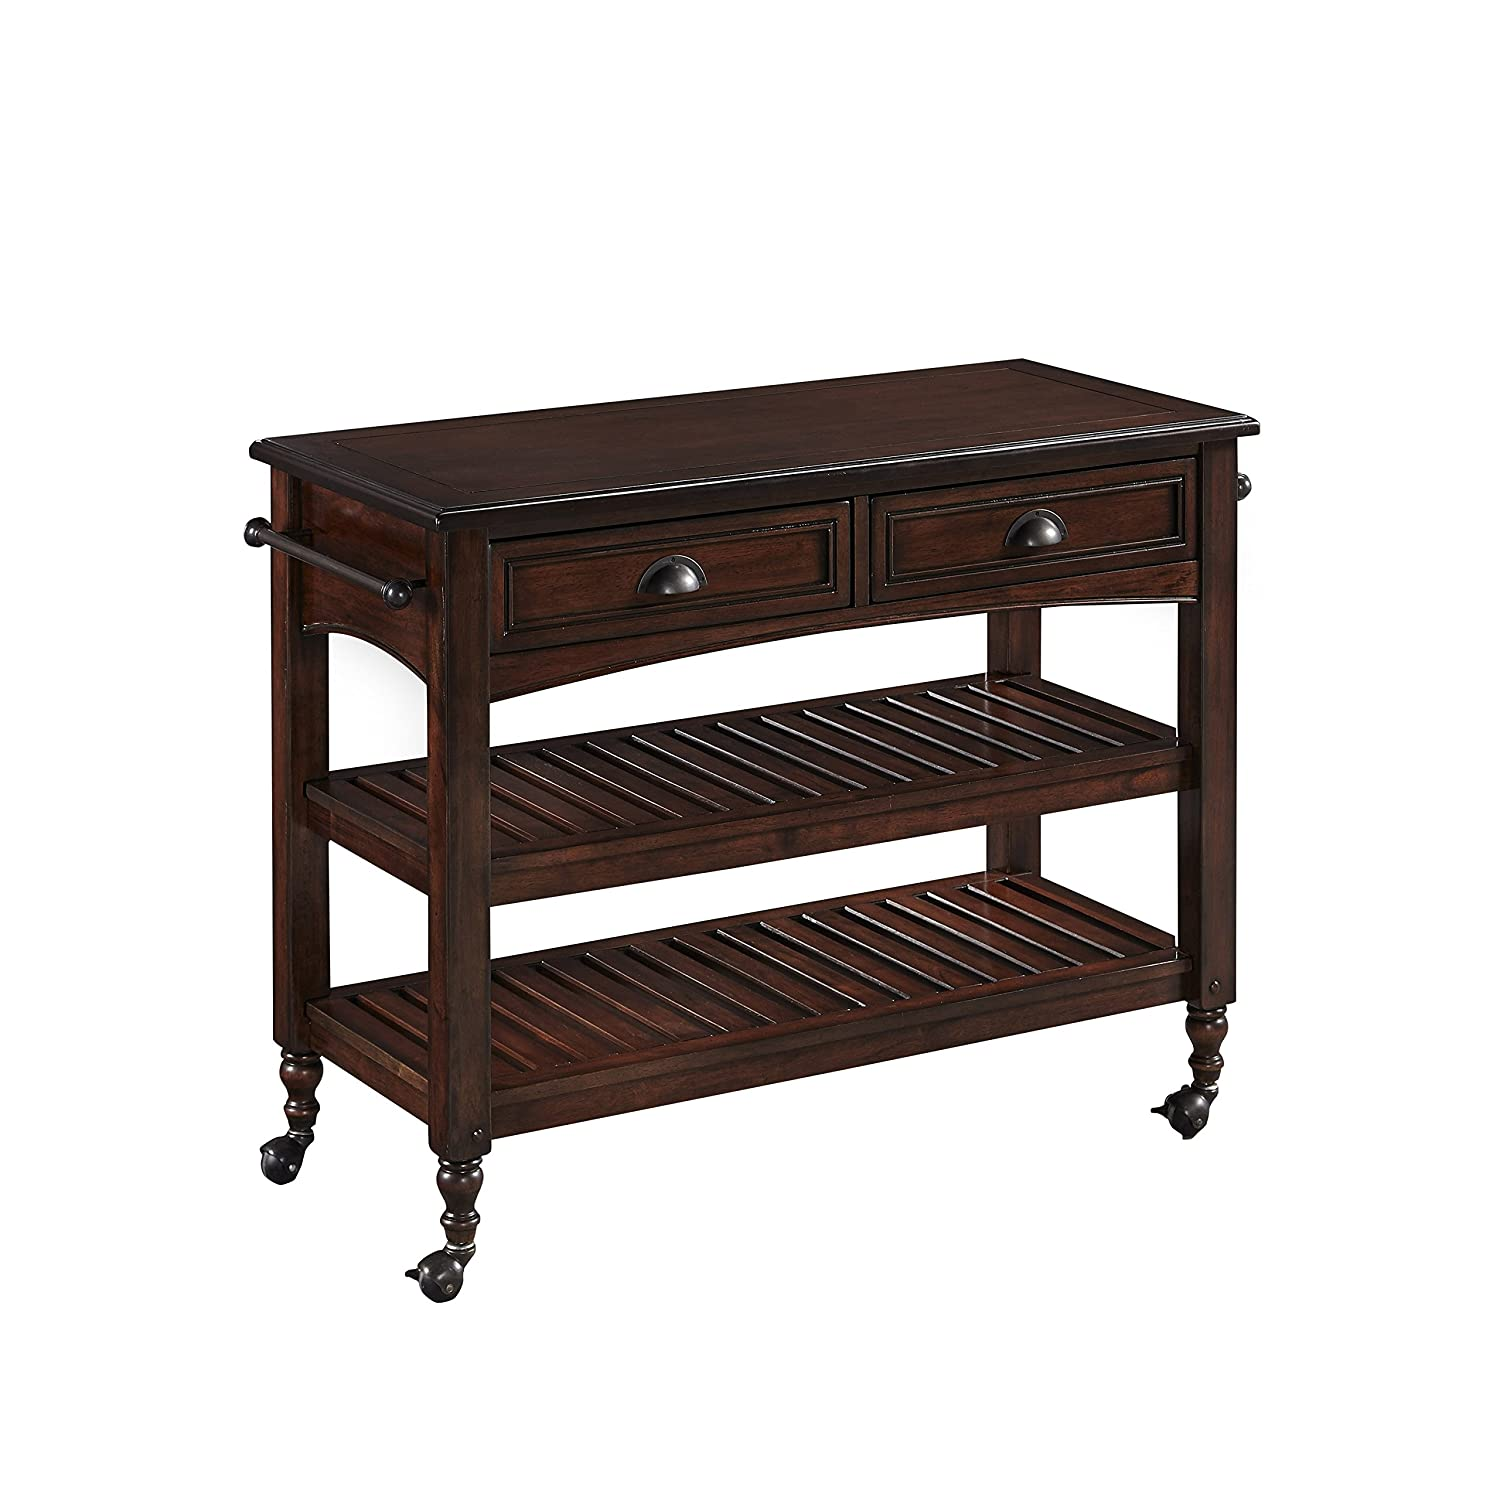 Country Comfort Aged Bourbon Kitchen Cart with Wood Top by Home Styles